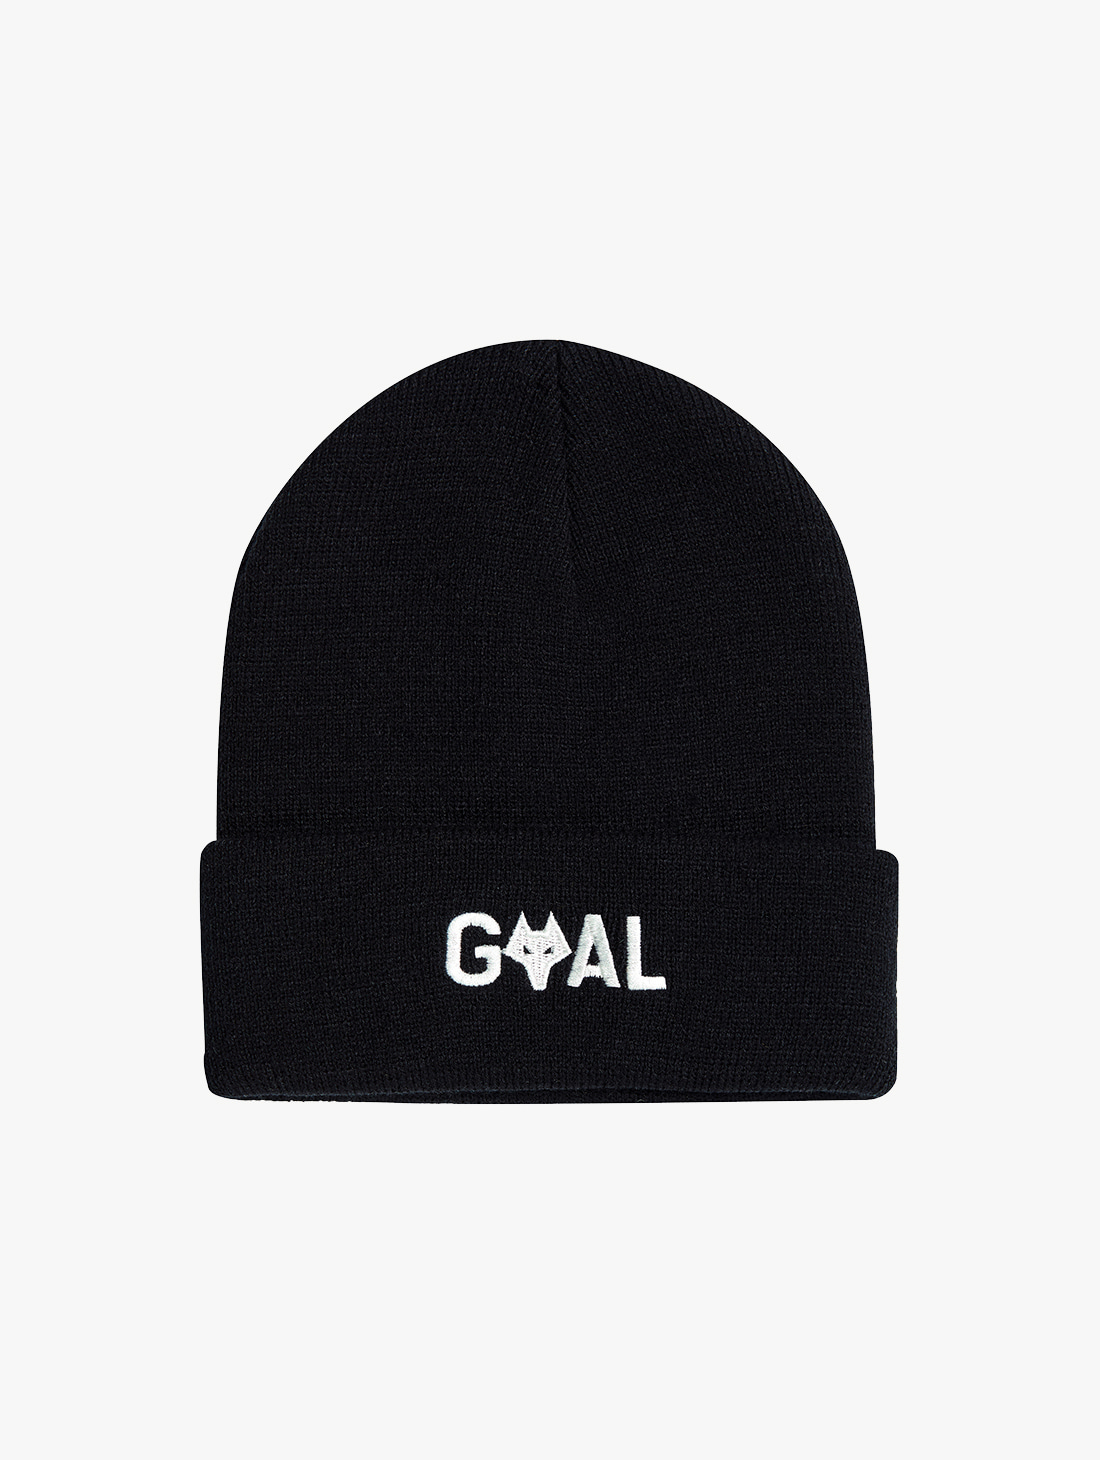 GOALSTUDIO (Sold Out) WWFC BEANIE